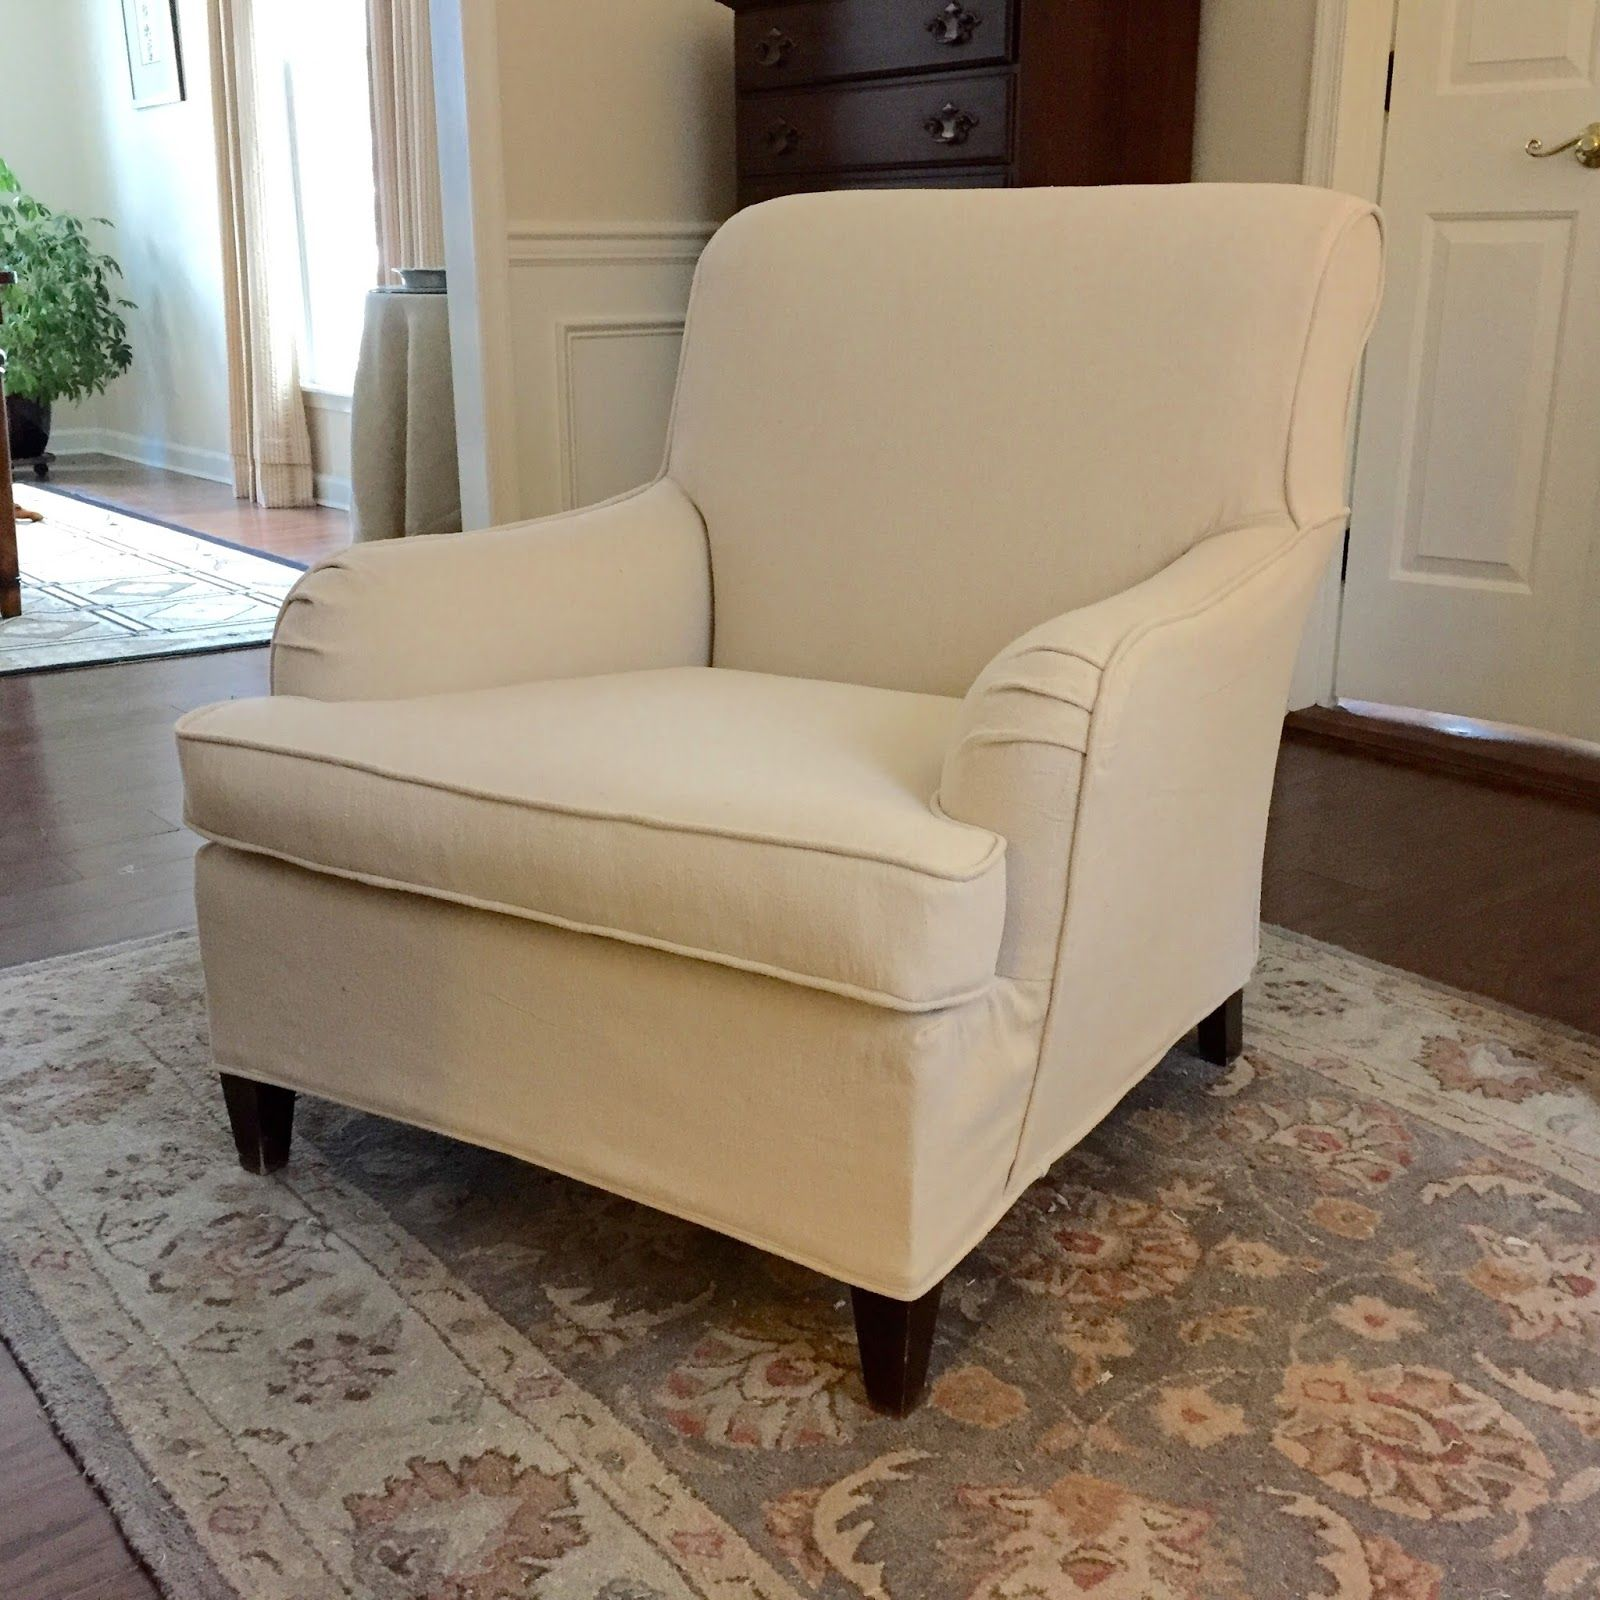 Drop Cloth Slipcover Vintage Club Chair Slipcovers Chairs Upholstered